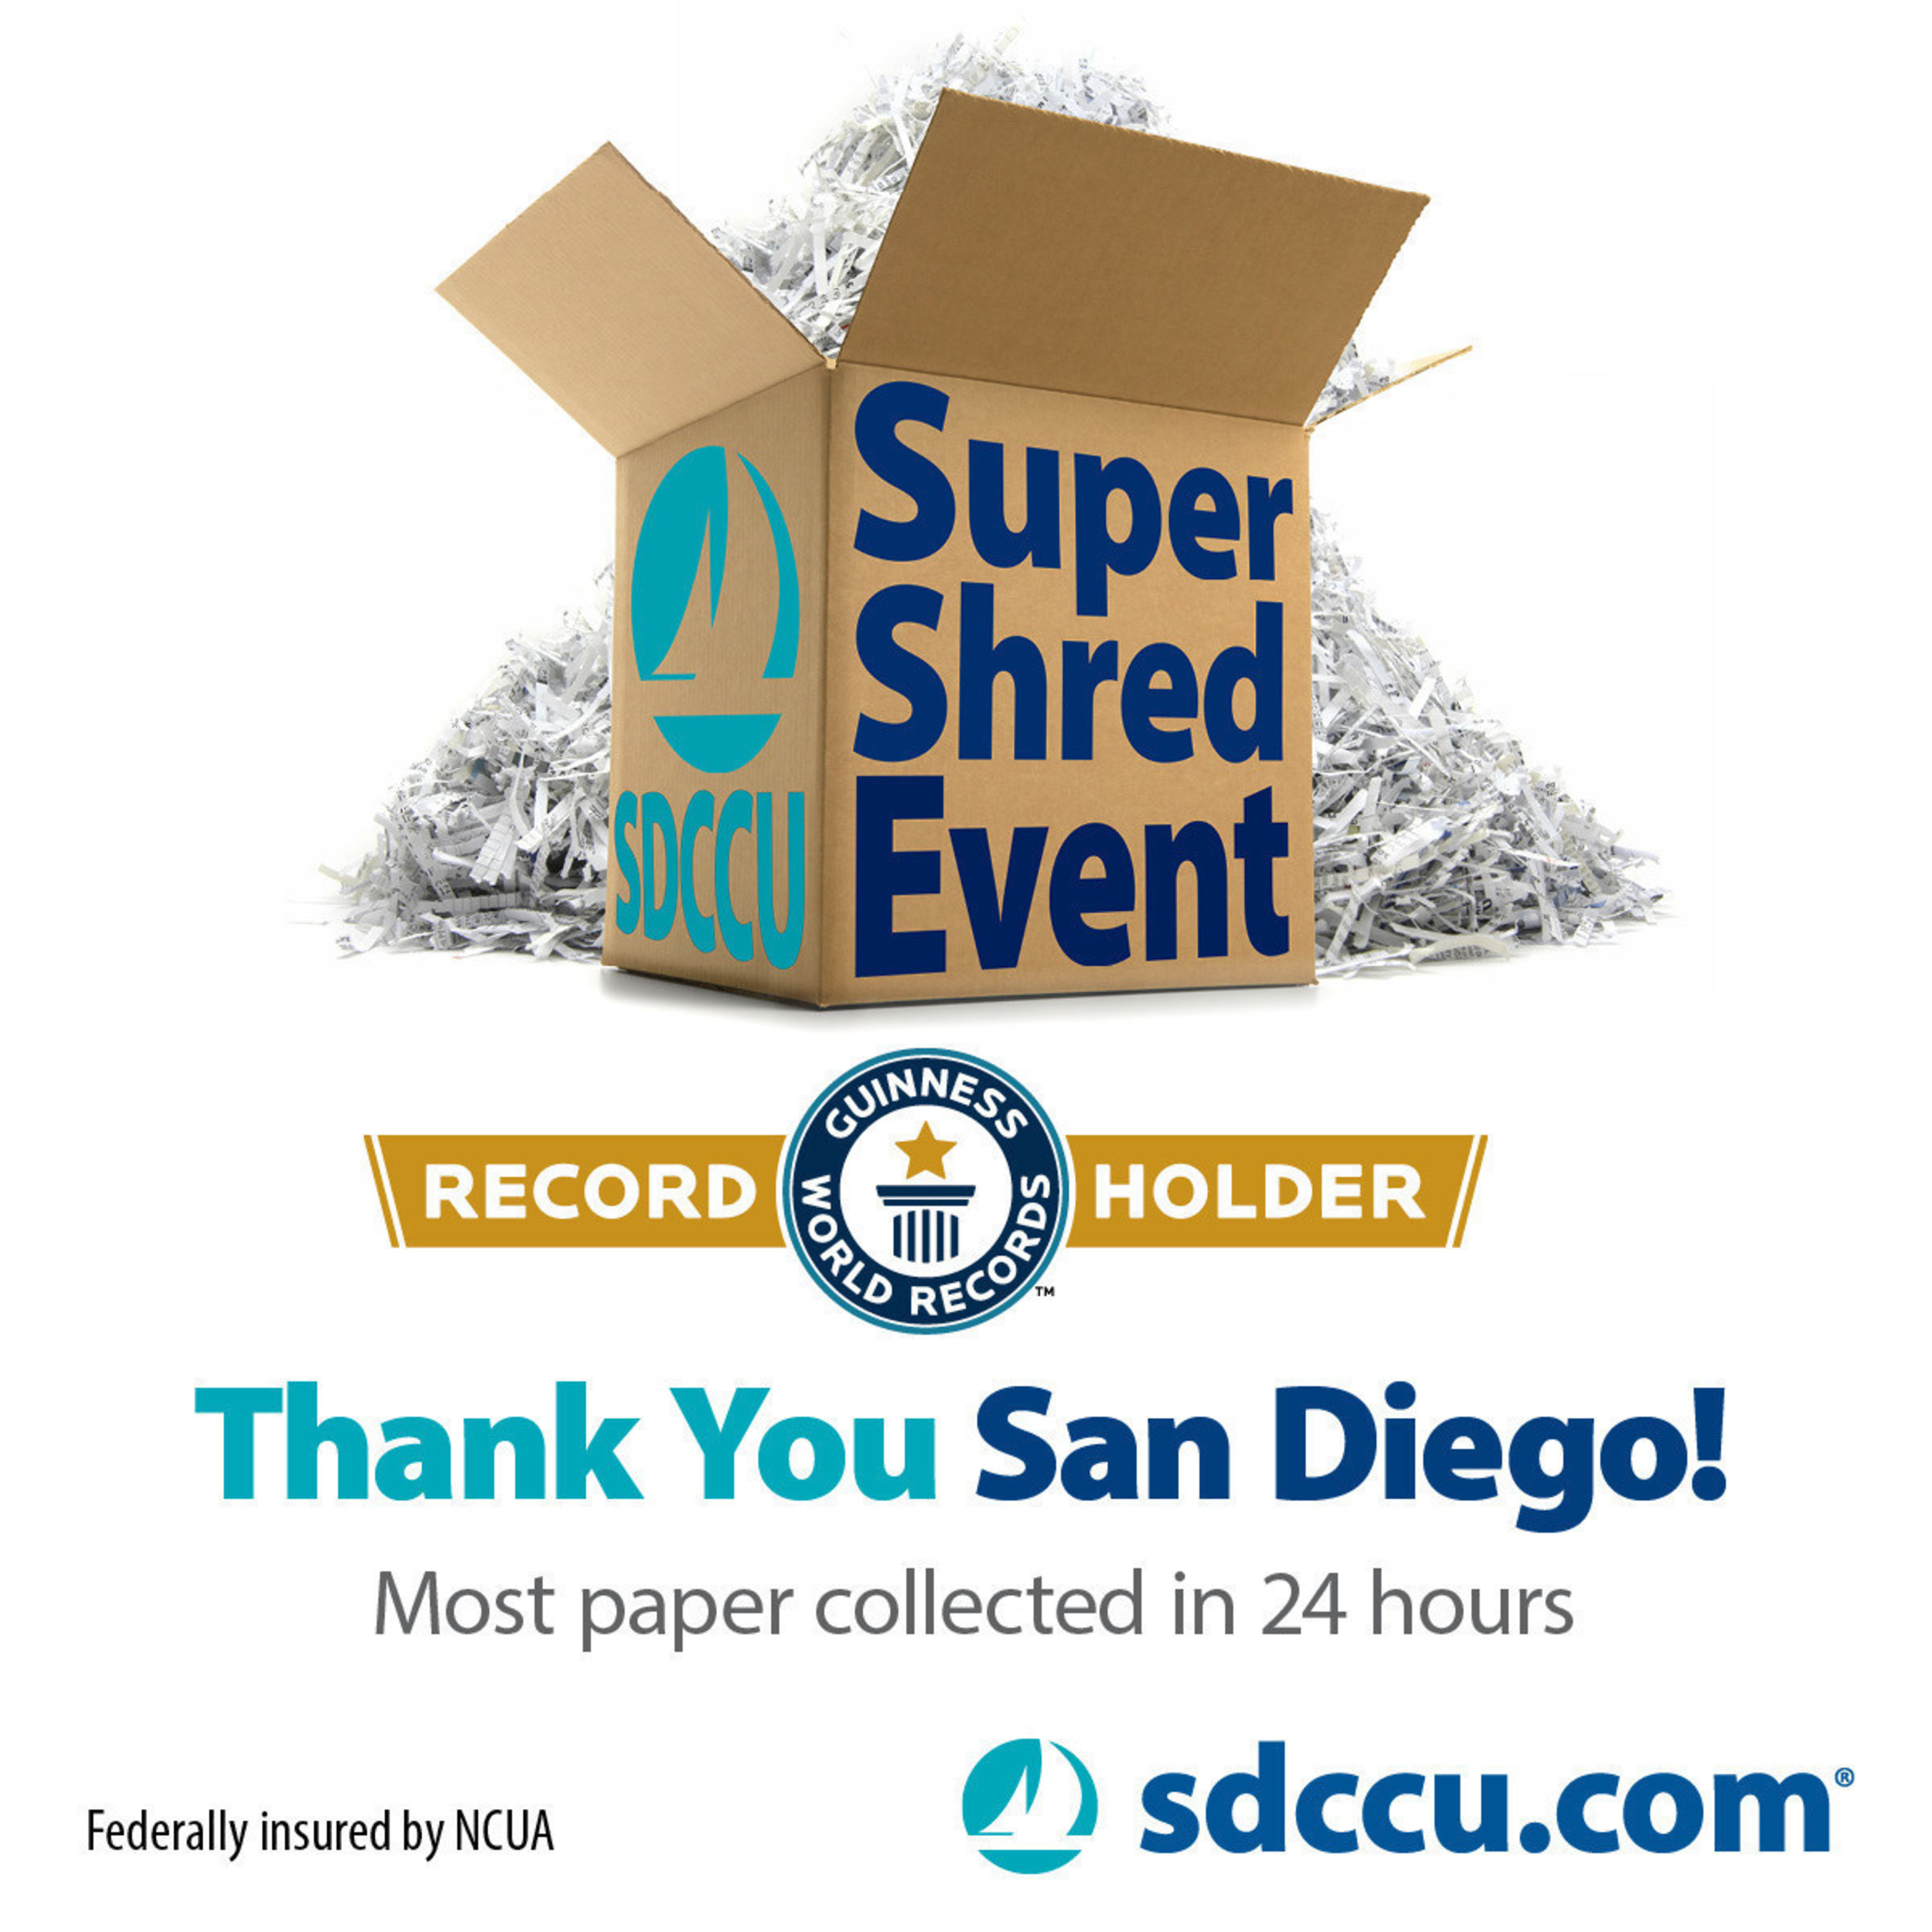 Sdccu Customer Service >> Sdccu Broke Its Existing Guinness World Records Title At The 2016